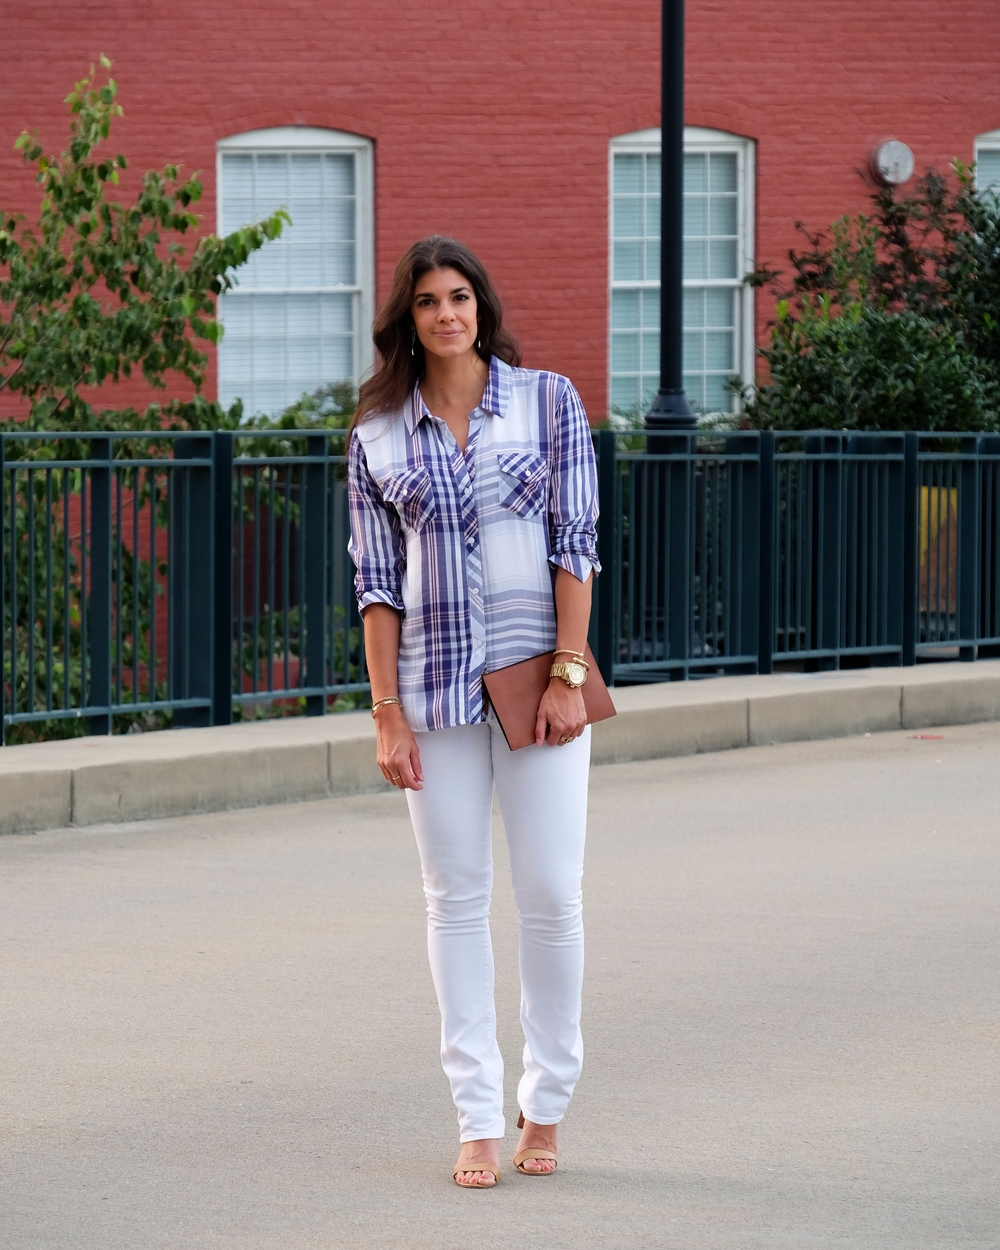 LaurenSchwaiger-Life-Style-Blog-OOTD-Rails-Summer-Plaid-White-Blue.jpg